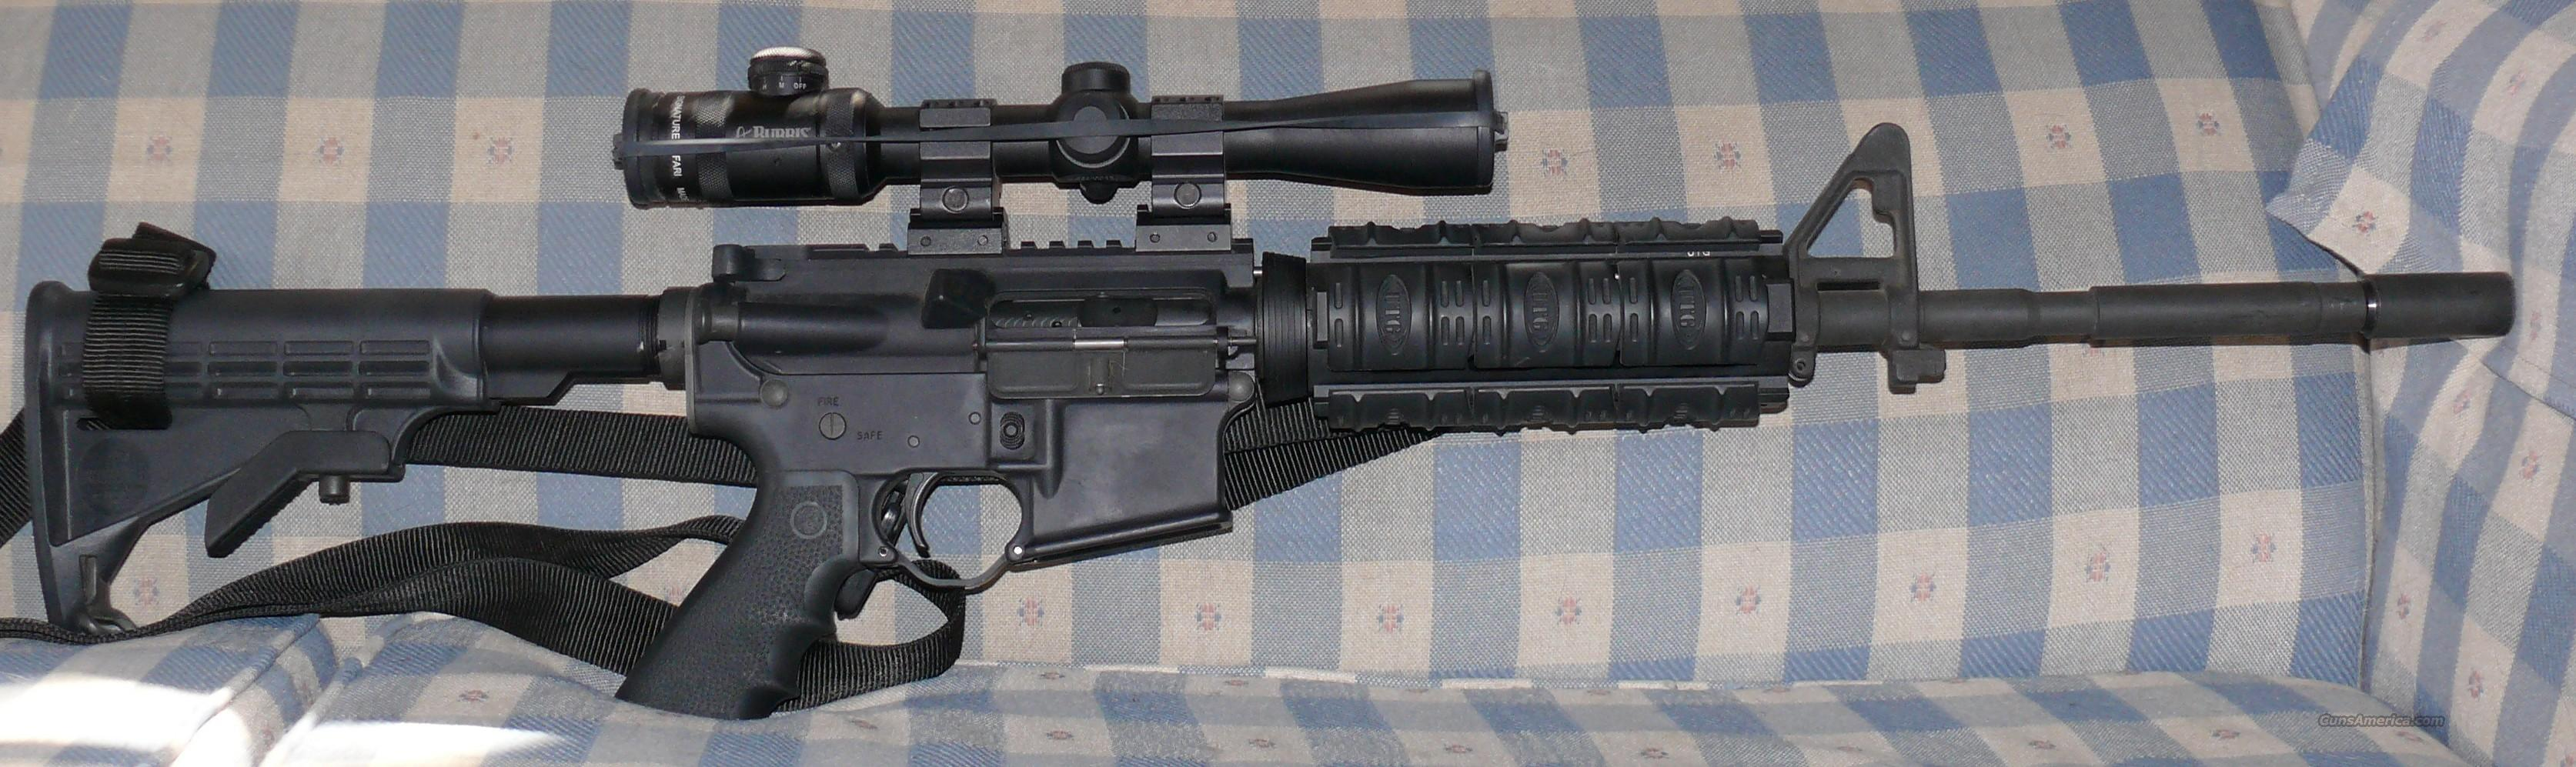 Great Deal on Bushmaster M4 Patrolman's Carbine  Guns > Rifles > Bushmaster Rifles > Complete Rifles